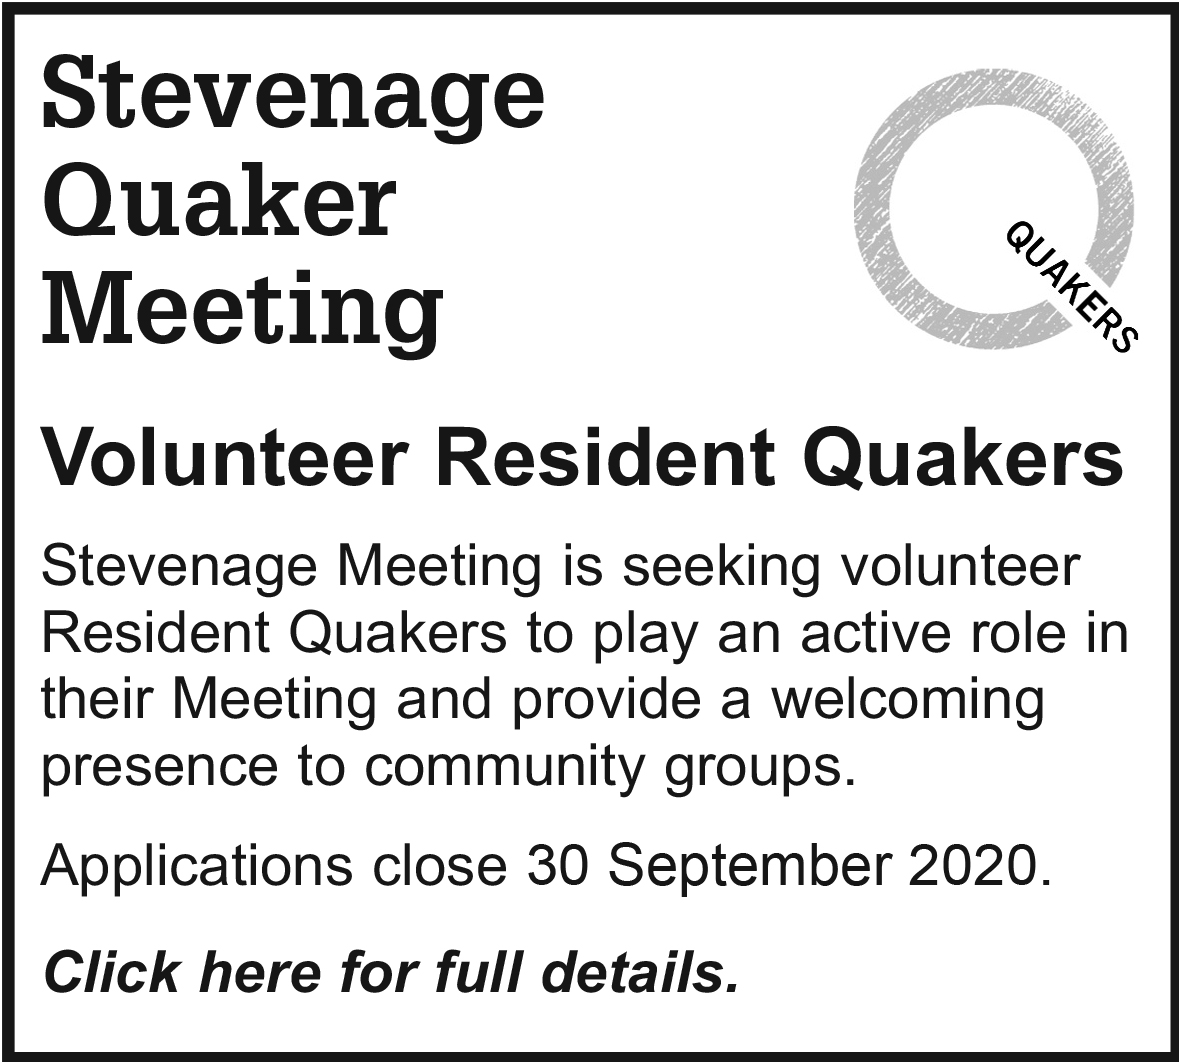 Stevenage Resident Quakers